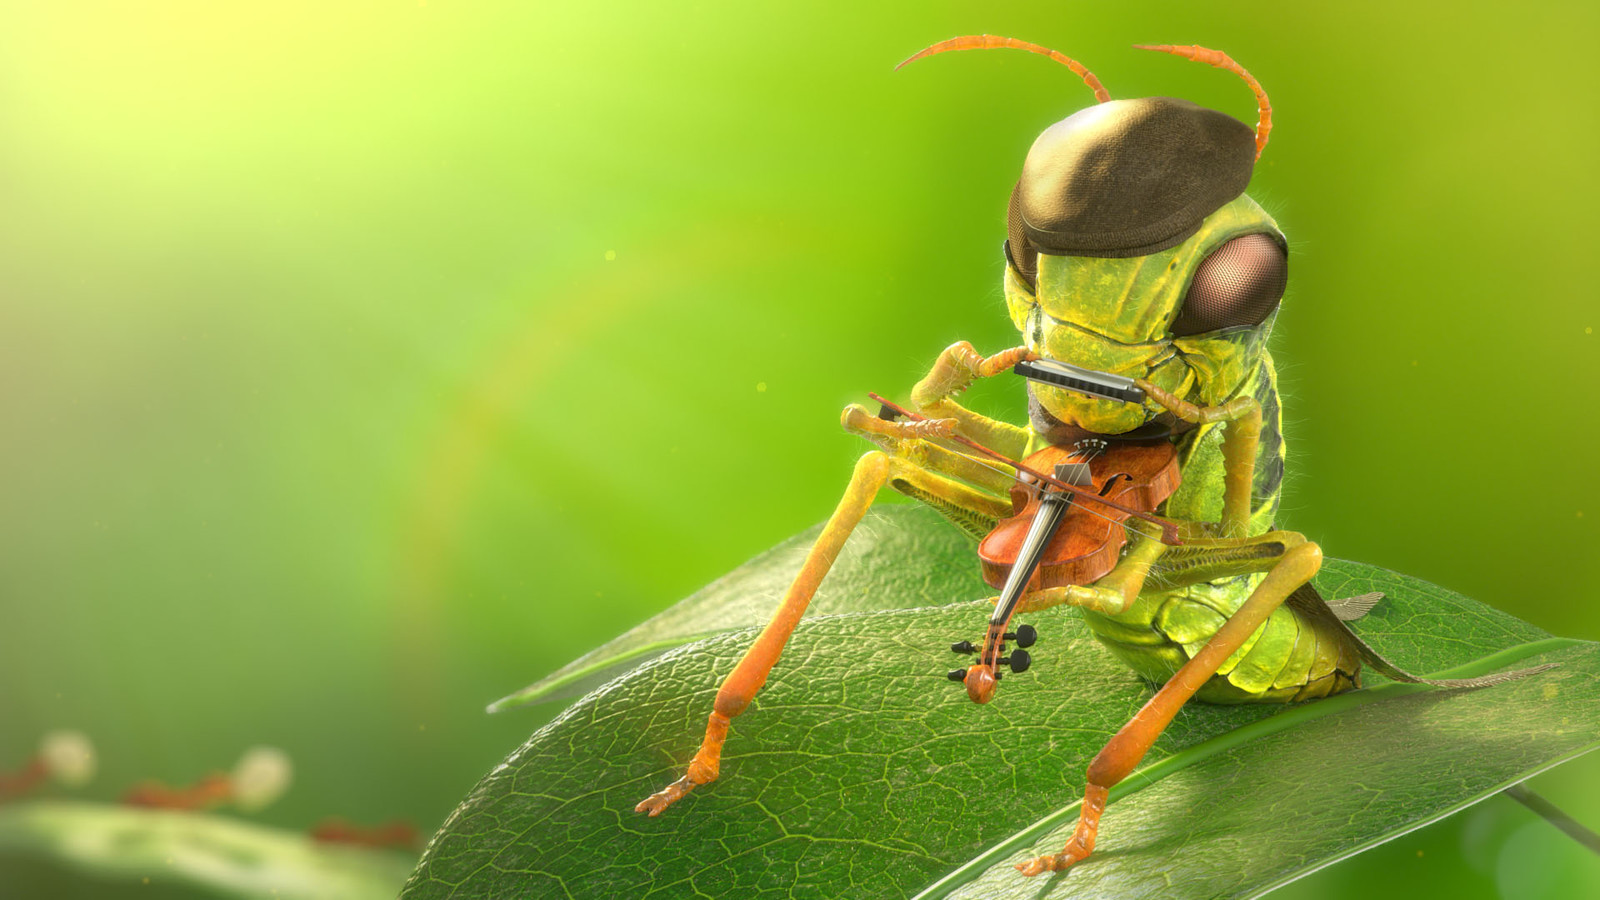 """""""Where are you going with those heavy things?"""" asked the grasshopper.  Without stopping, the first ant replied, """"To our ant hill.  This is the third kernel I've delivered today."""""""